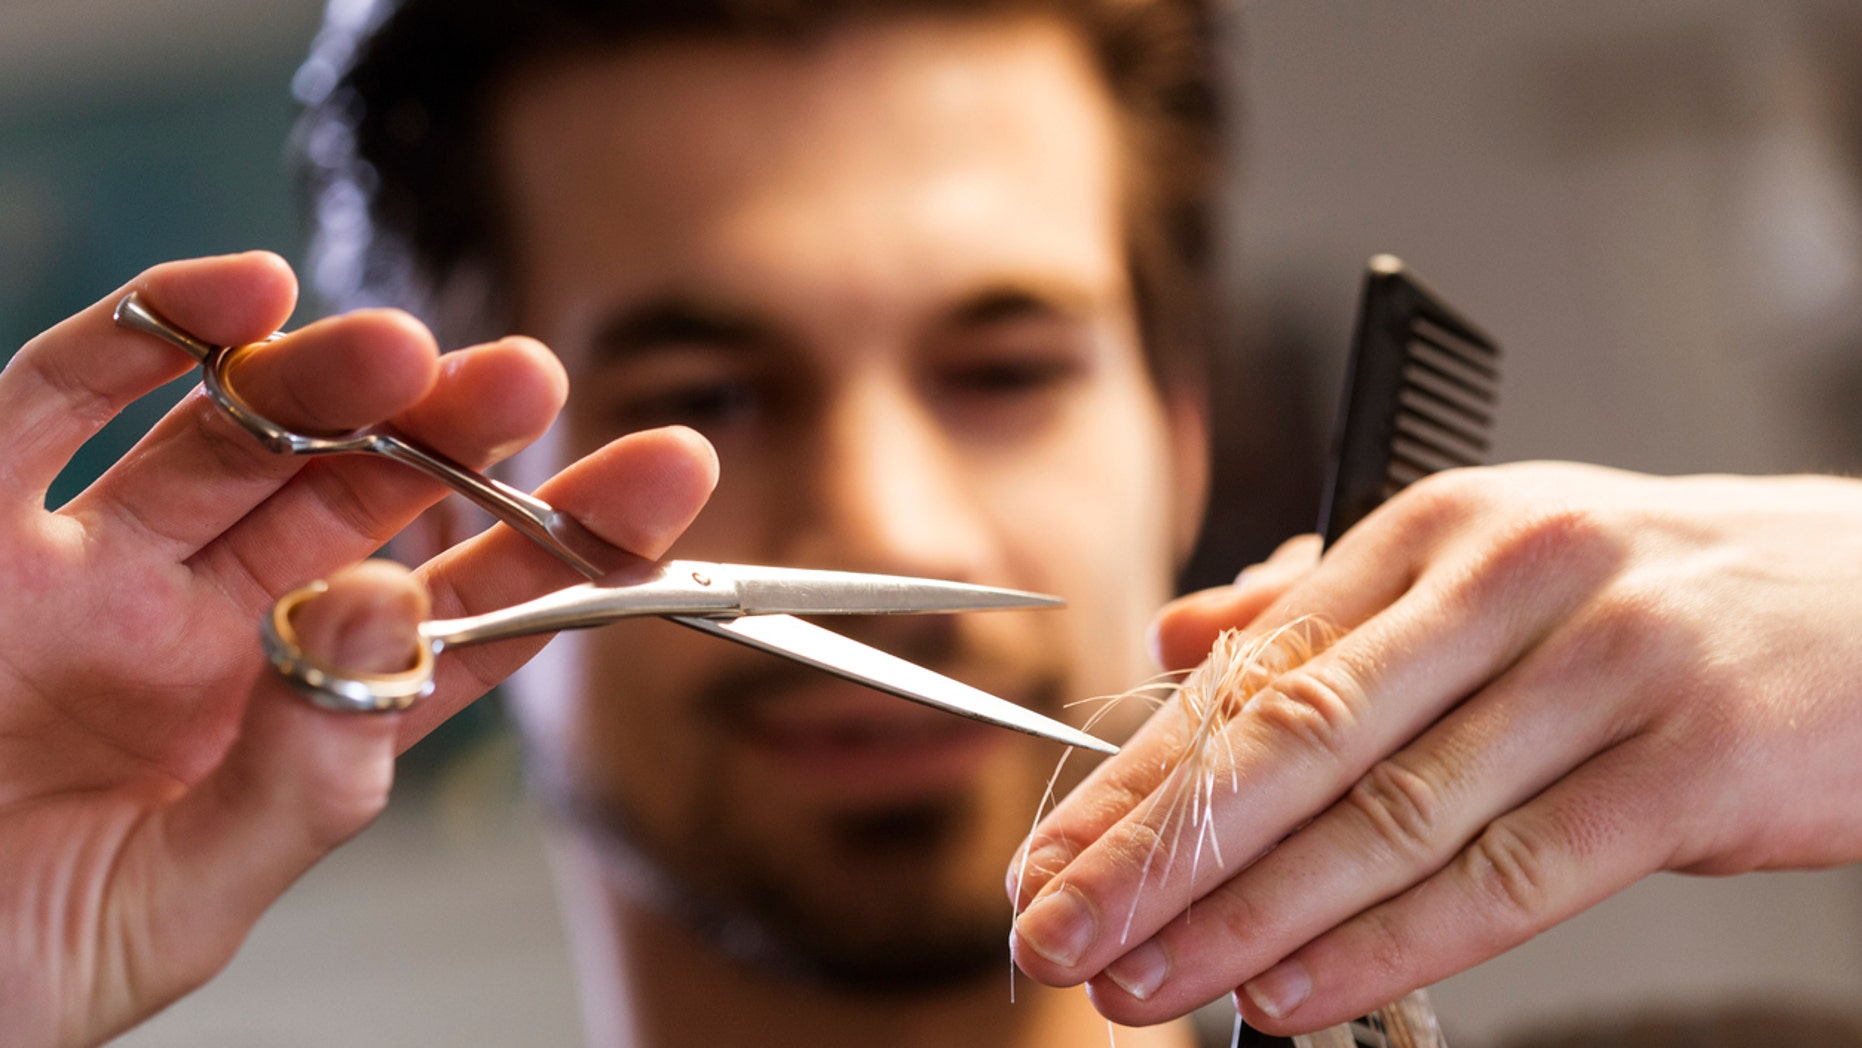 The ribbon-cutting style shears have been getting mostly positive responses on social media.